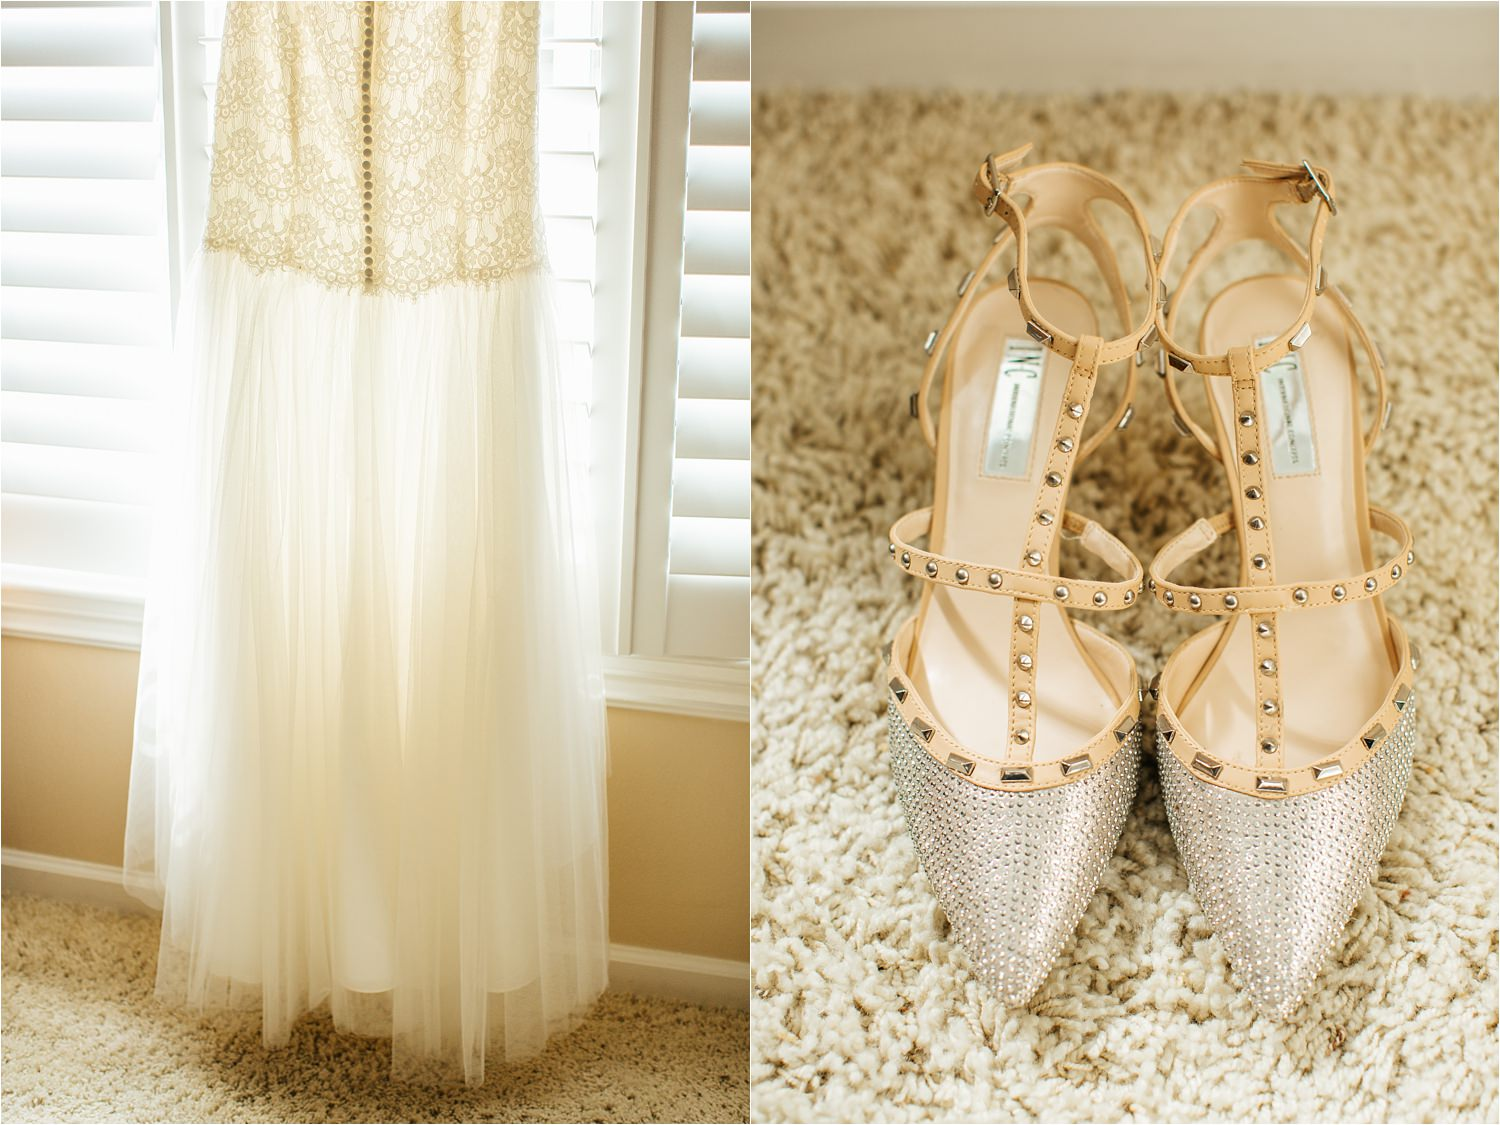 Wedding Shoes & David's Bridal Wedding Dress - http://brittneyhannonphotography.com